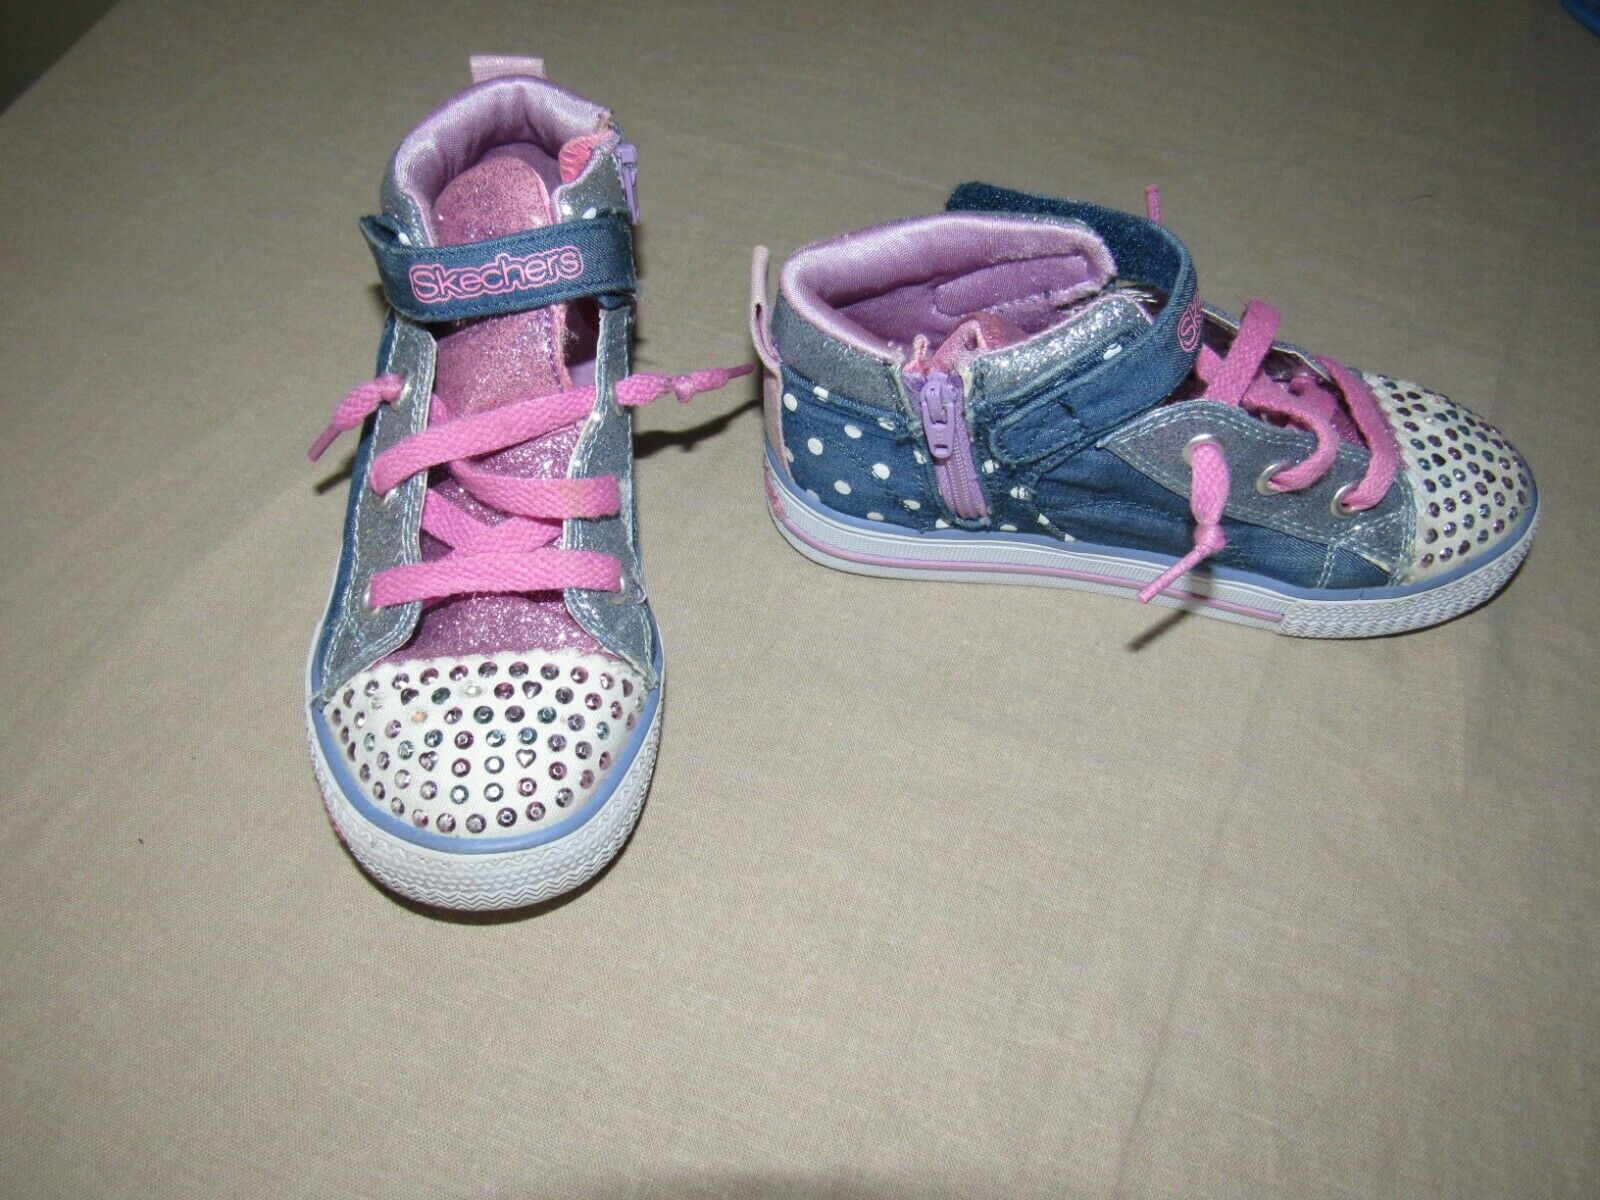 Skechers Twinkle Toes-chill Outs Shoes